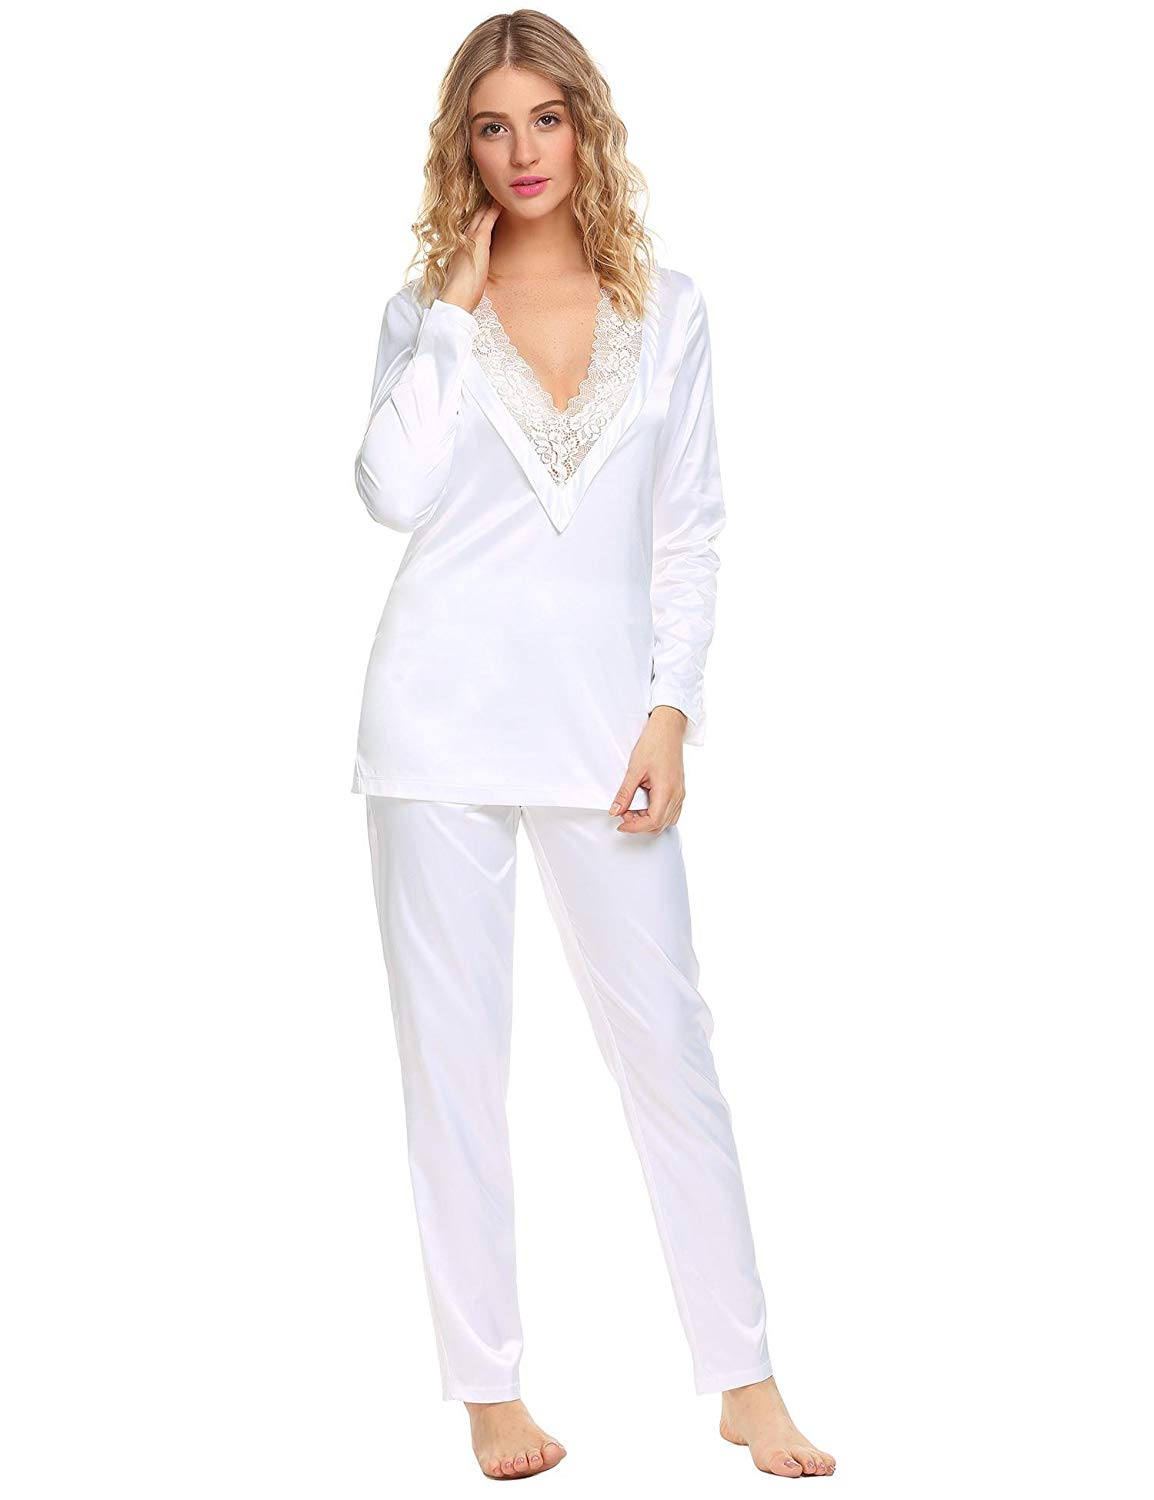 Skylin Satin Sleepwear Women Lace Trim V-Neck Long Sleeve Tops   Pants Pajama  Set 022c55683